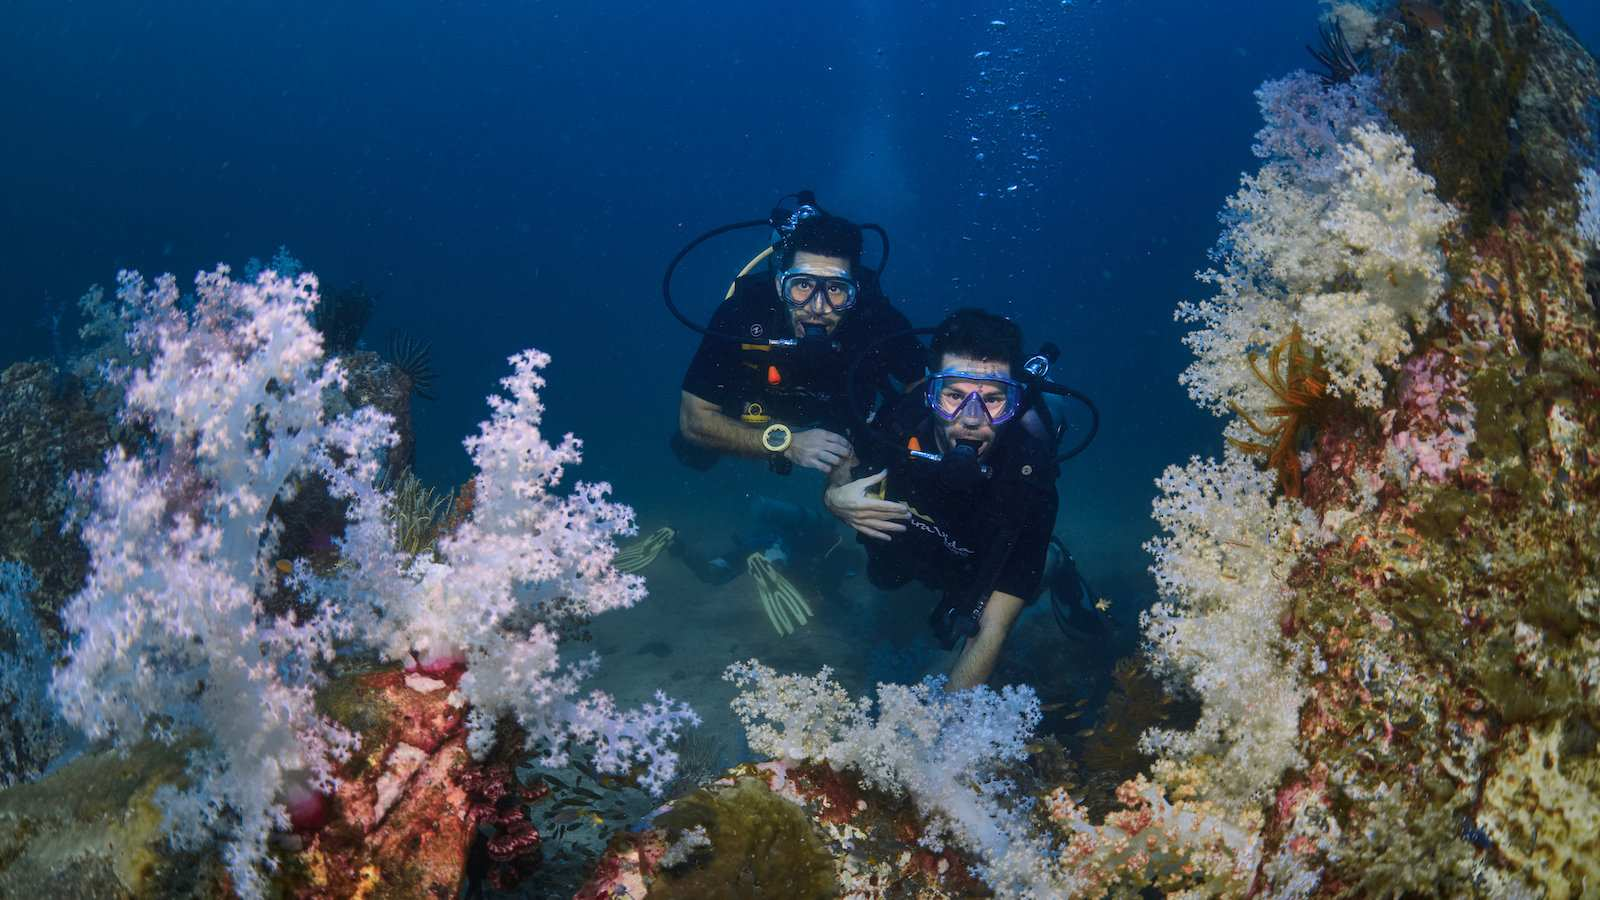 Spot incredible coral while diving in the Red Sea on a gay diving trip in Egypt